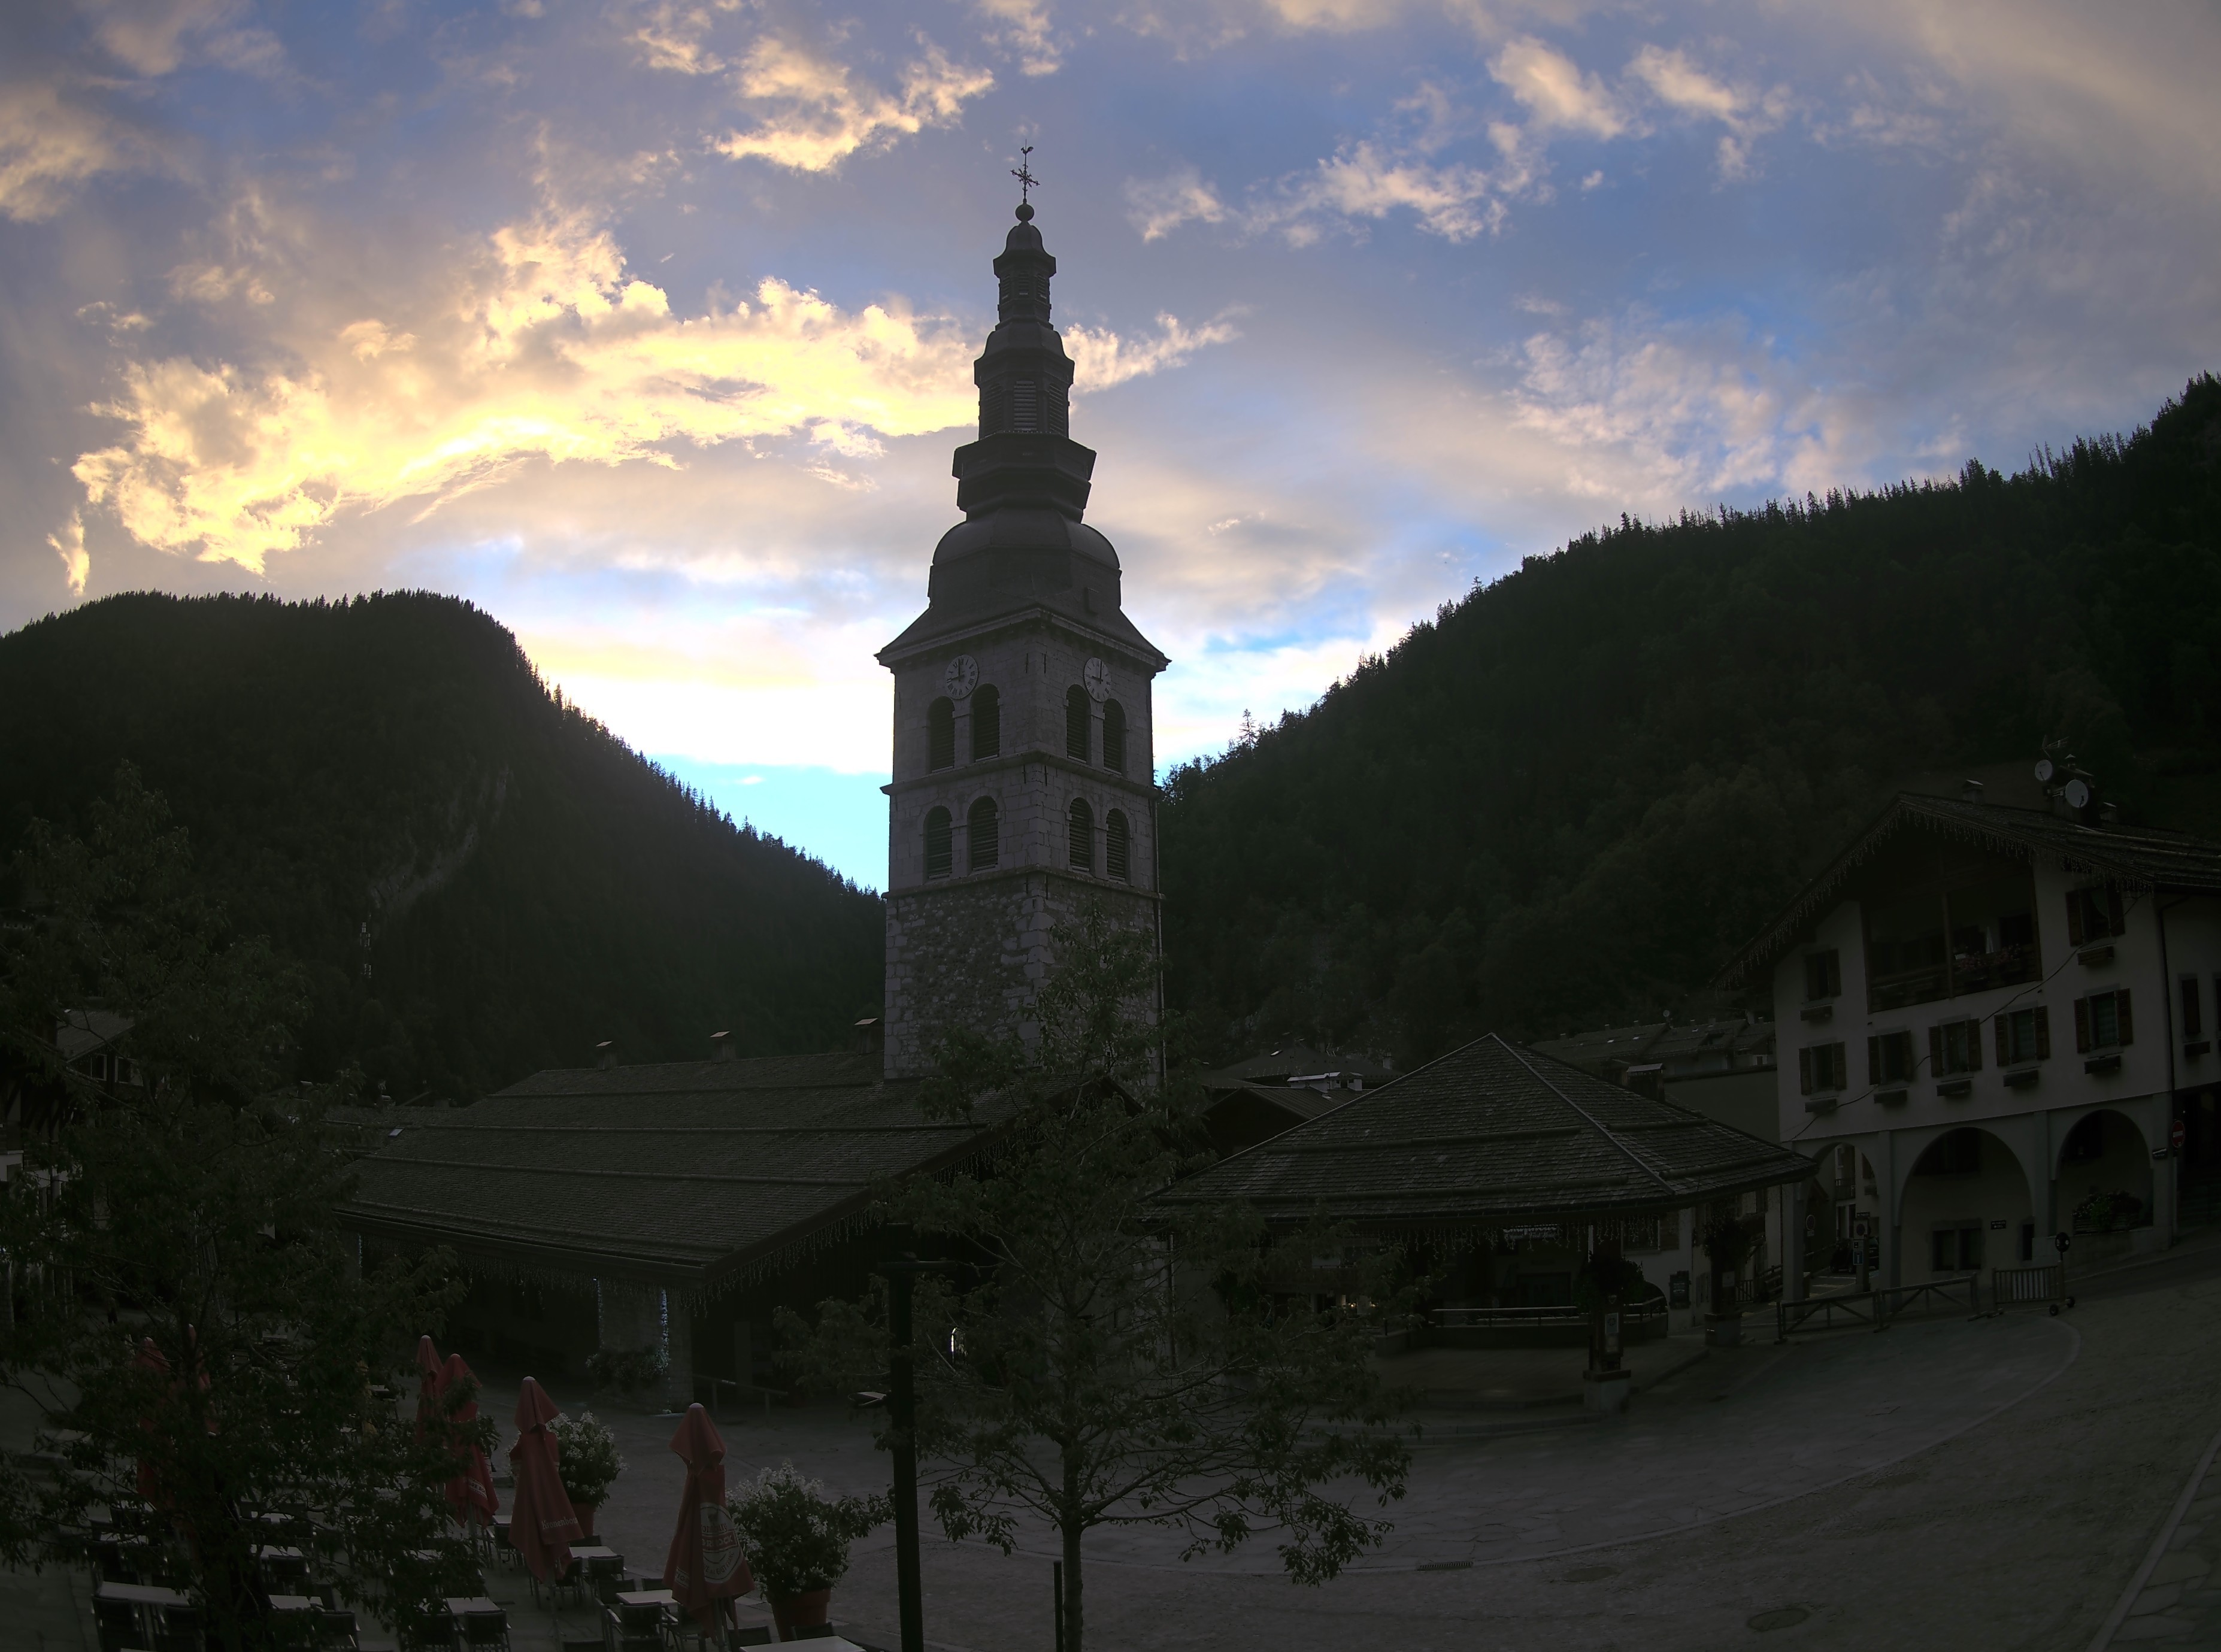 LA PLACE DE L'EGLISE LA CLUSAZ